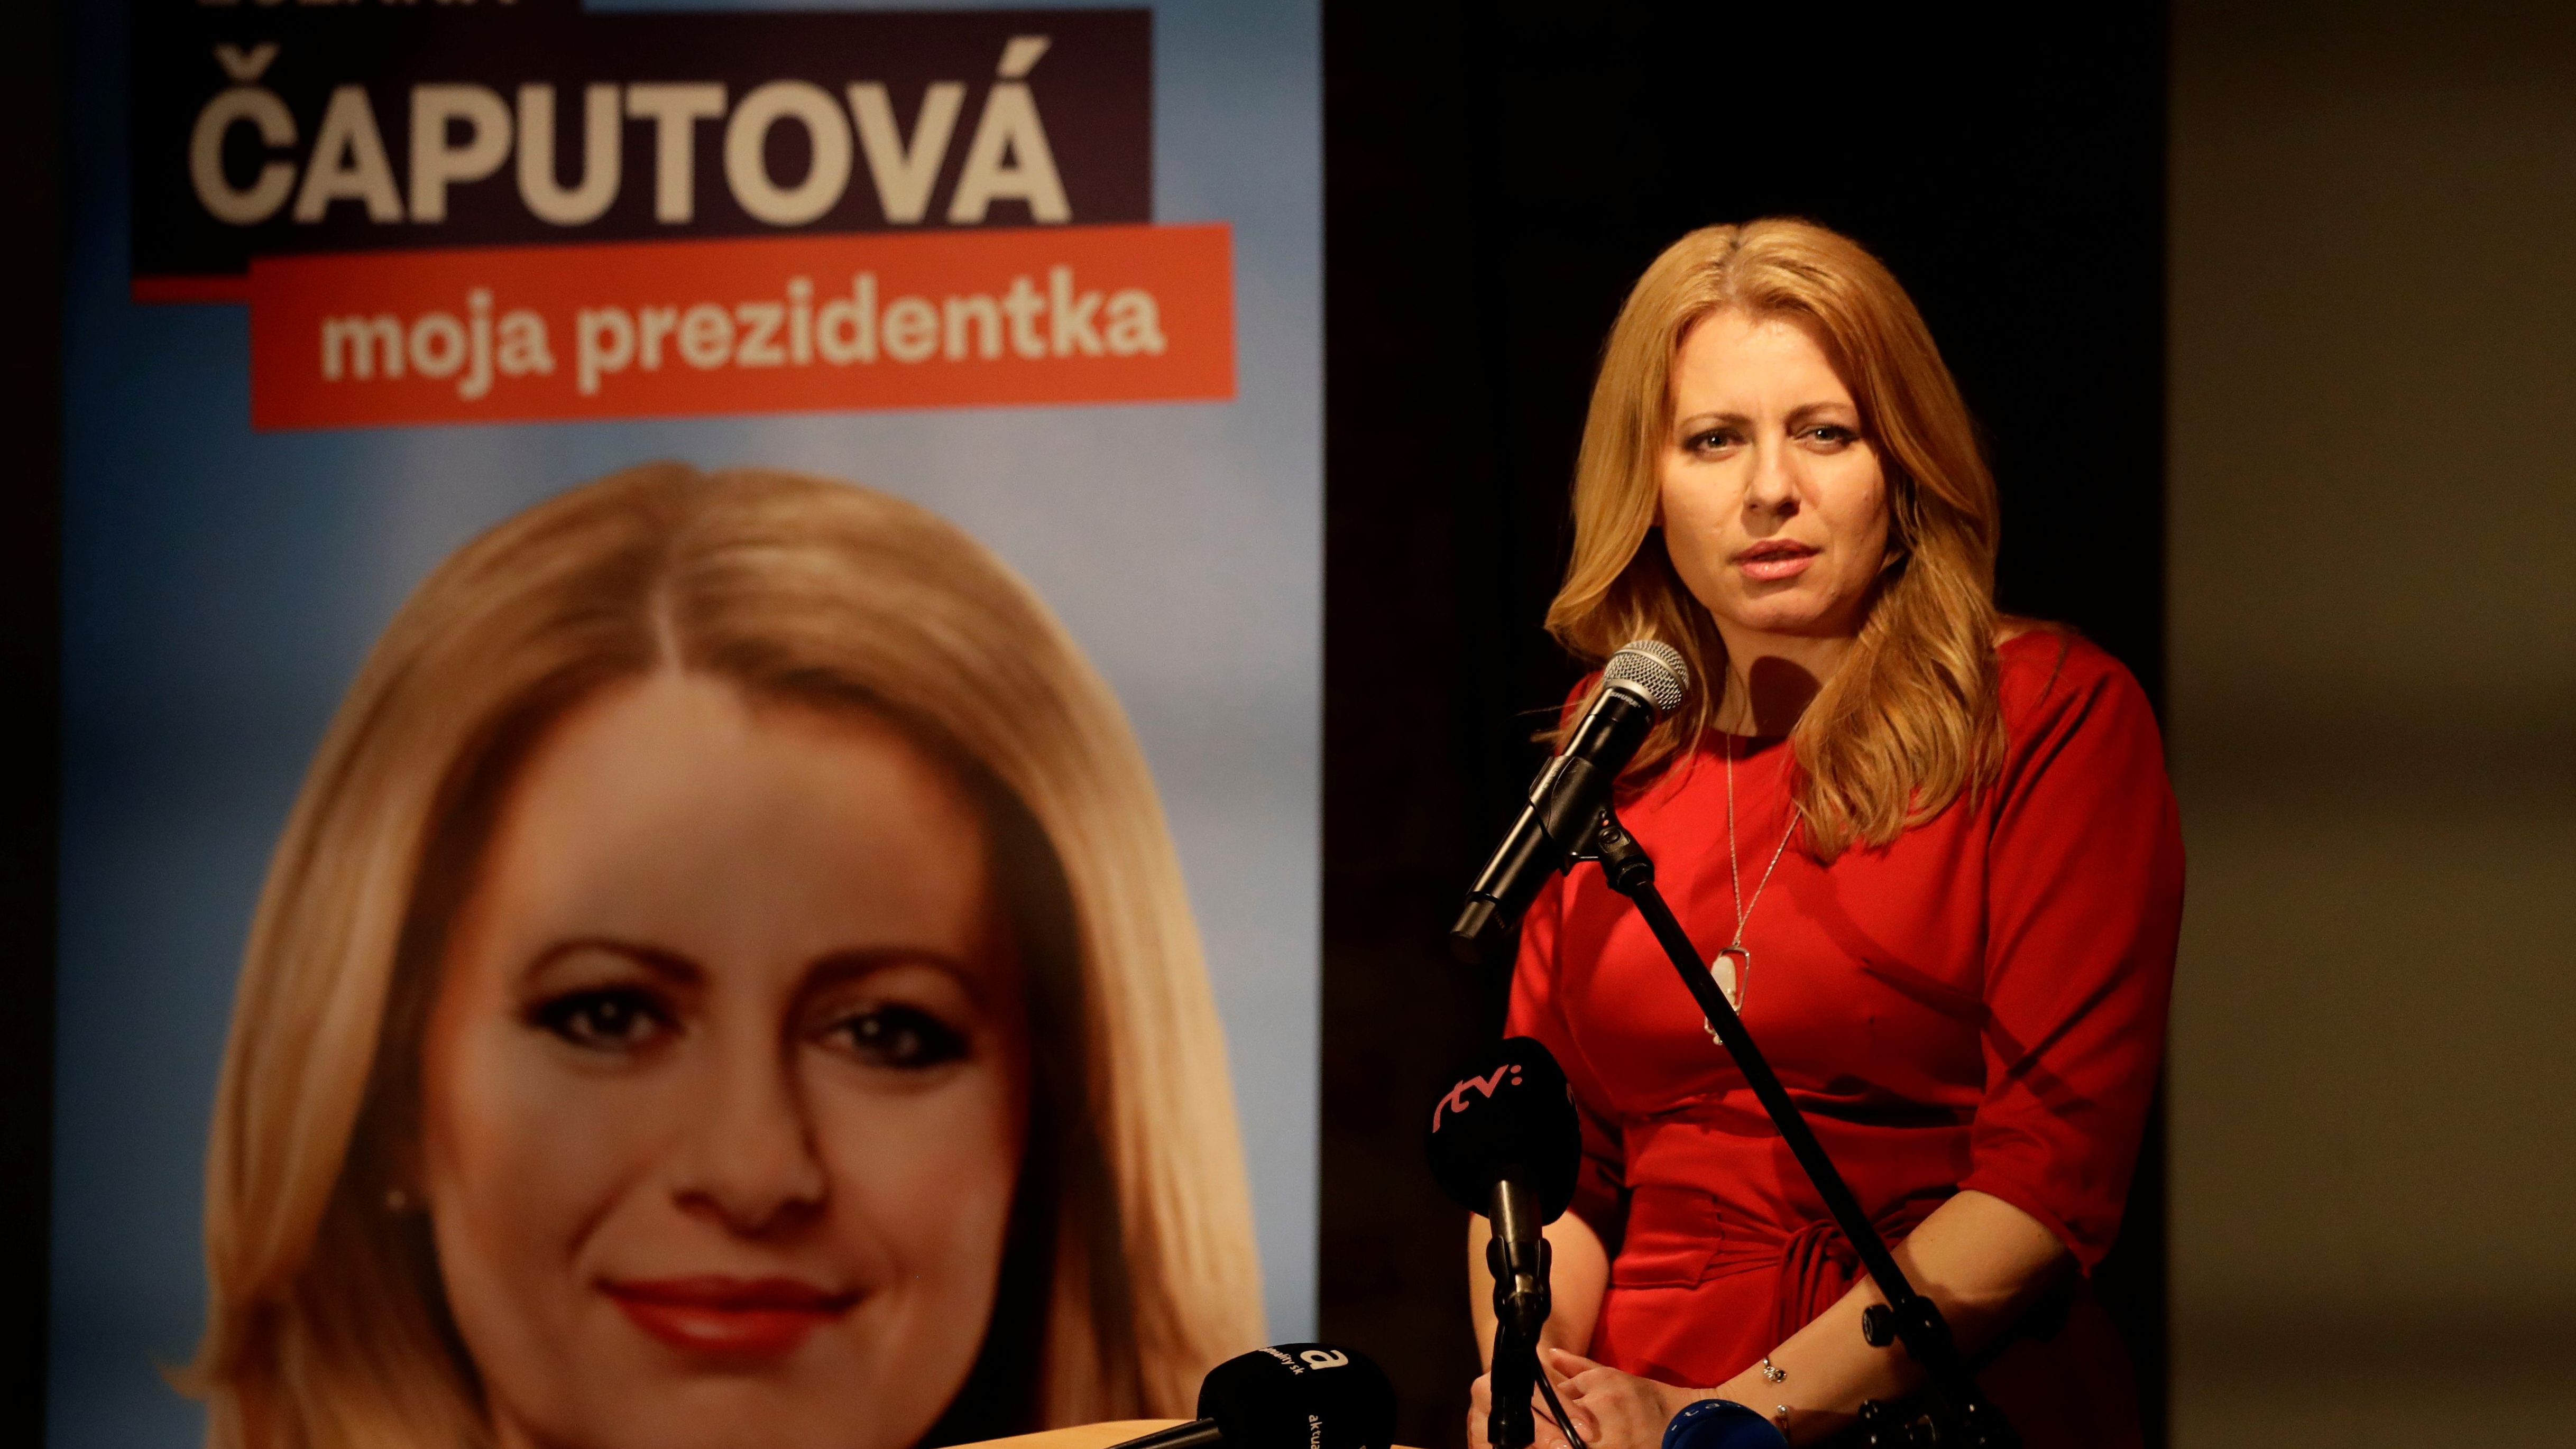 Slovakia's presidential candidate Zuzana Caputova speaks while waiting for the first unofficial results at a party election headquarters in Bratislava, Slovakia, March 16, 2019.